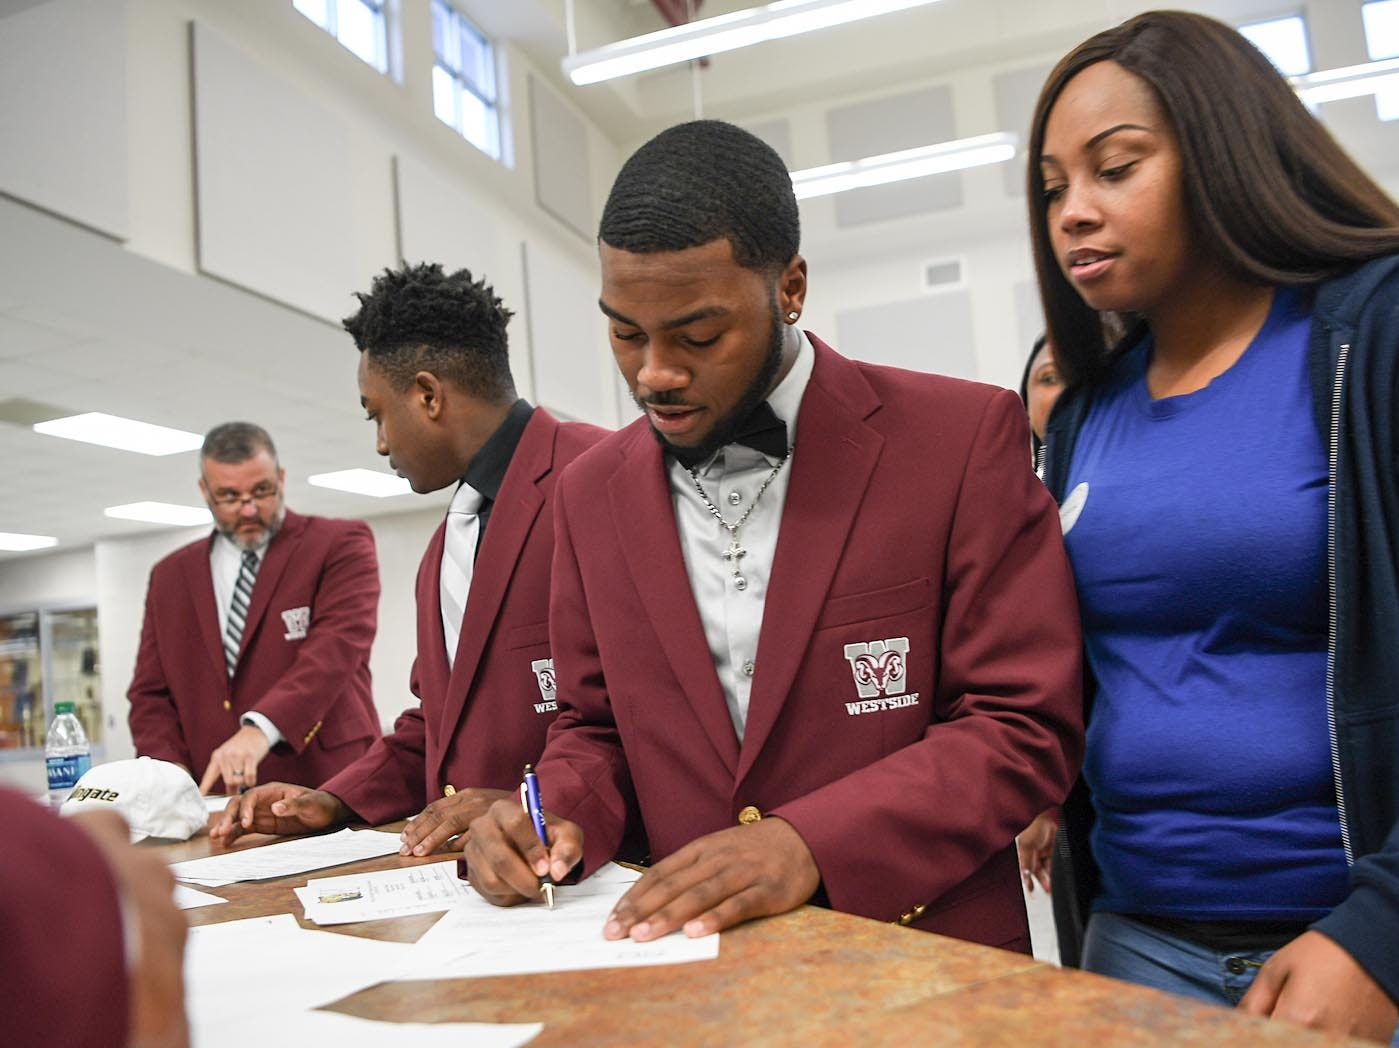 Wingate University signees K.D. Fant-Miles, left, fills out paperwork near his mother Laura Fant, right, as one of seven athletes from Westside High School football to sign a National Letter of Intent at Westside High School in Anderson Wednesday. Newberry College signees Zach Howard, Devante Gambrell, Wingate University signees Nasir Evans and K.D. Fant-Miles, Presbyterian College signees Paul Johnson and Tim Johnson, and Florida Intstitute of Technology signee Ty Ty Danzy.